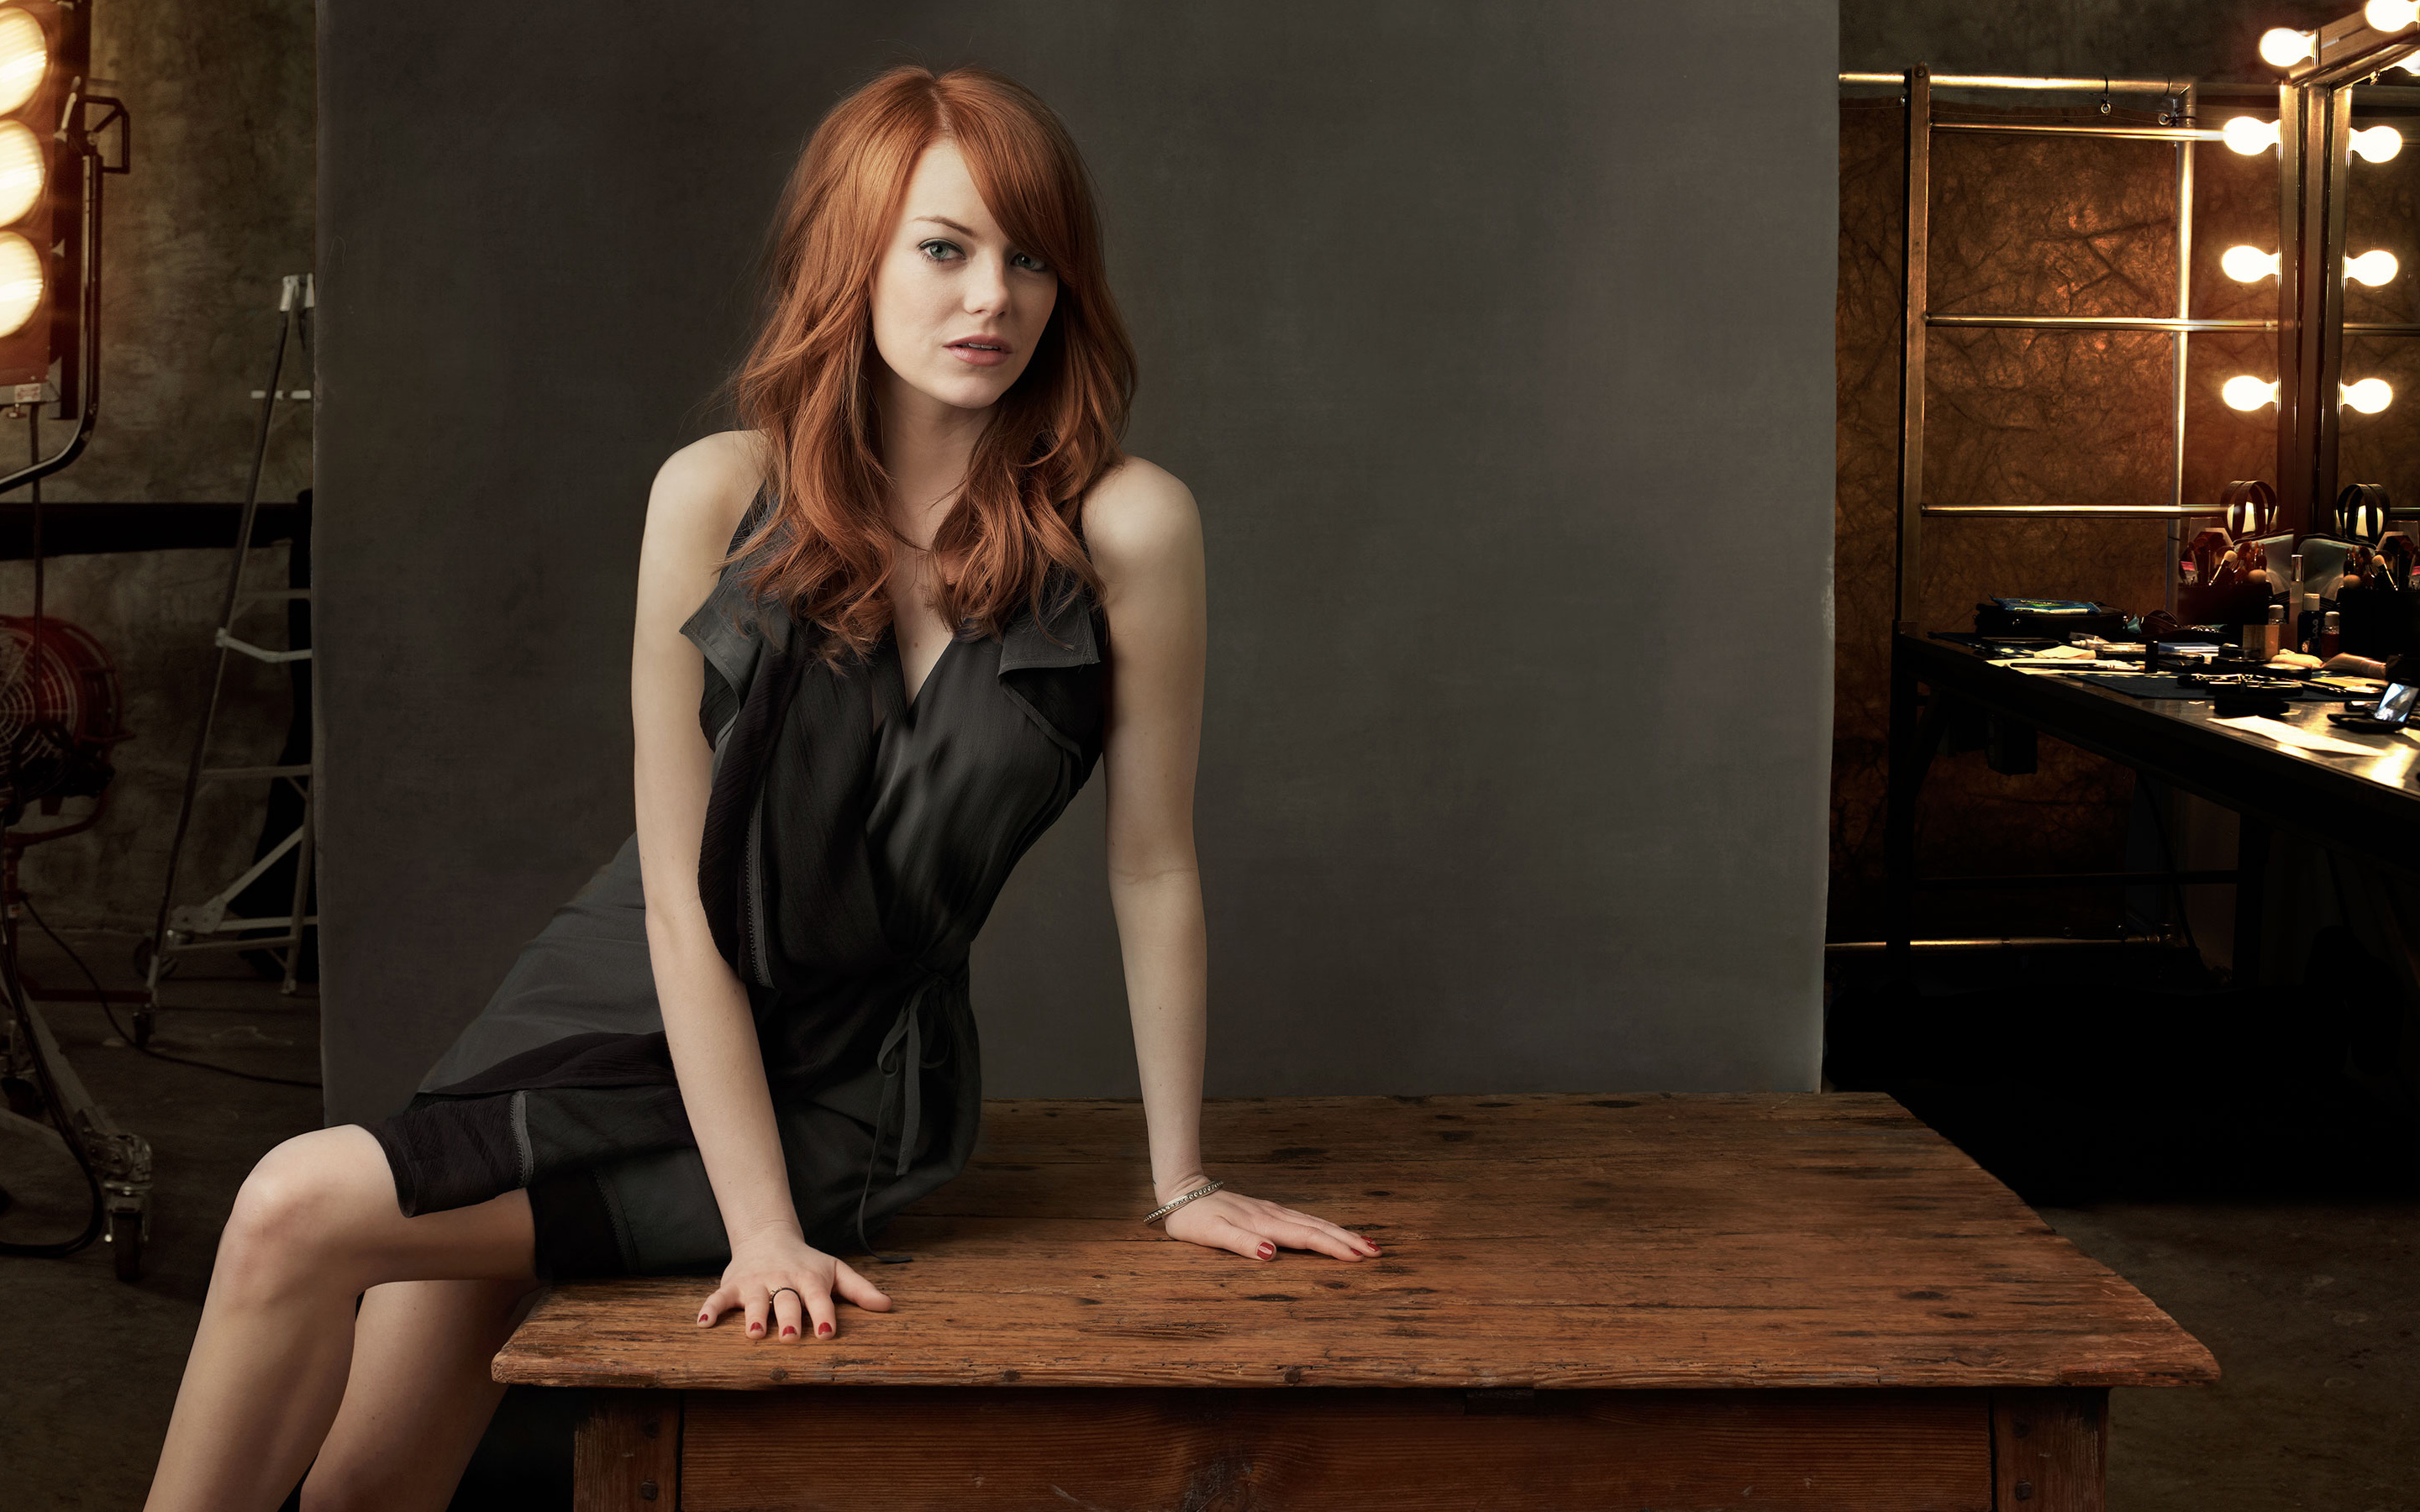 2880x1800 - Emma Stone Wallpapers 19